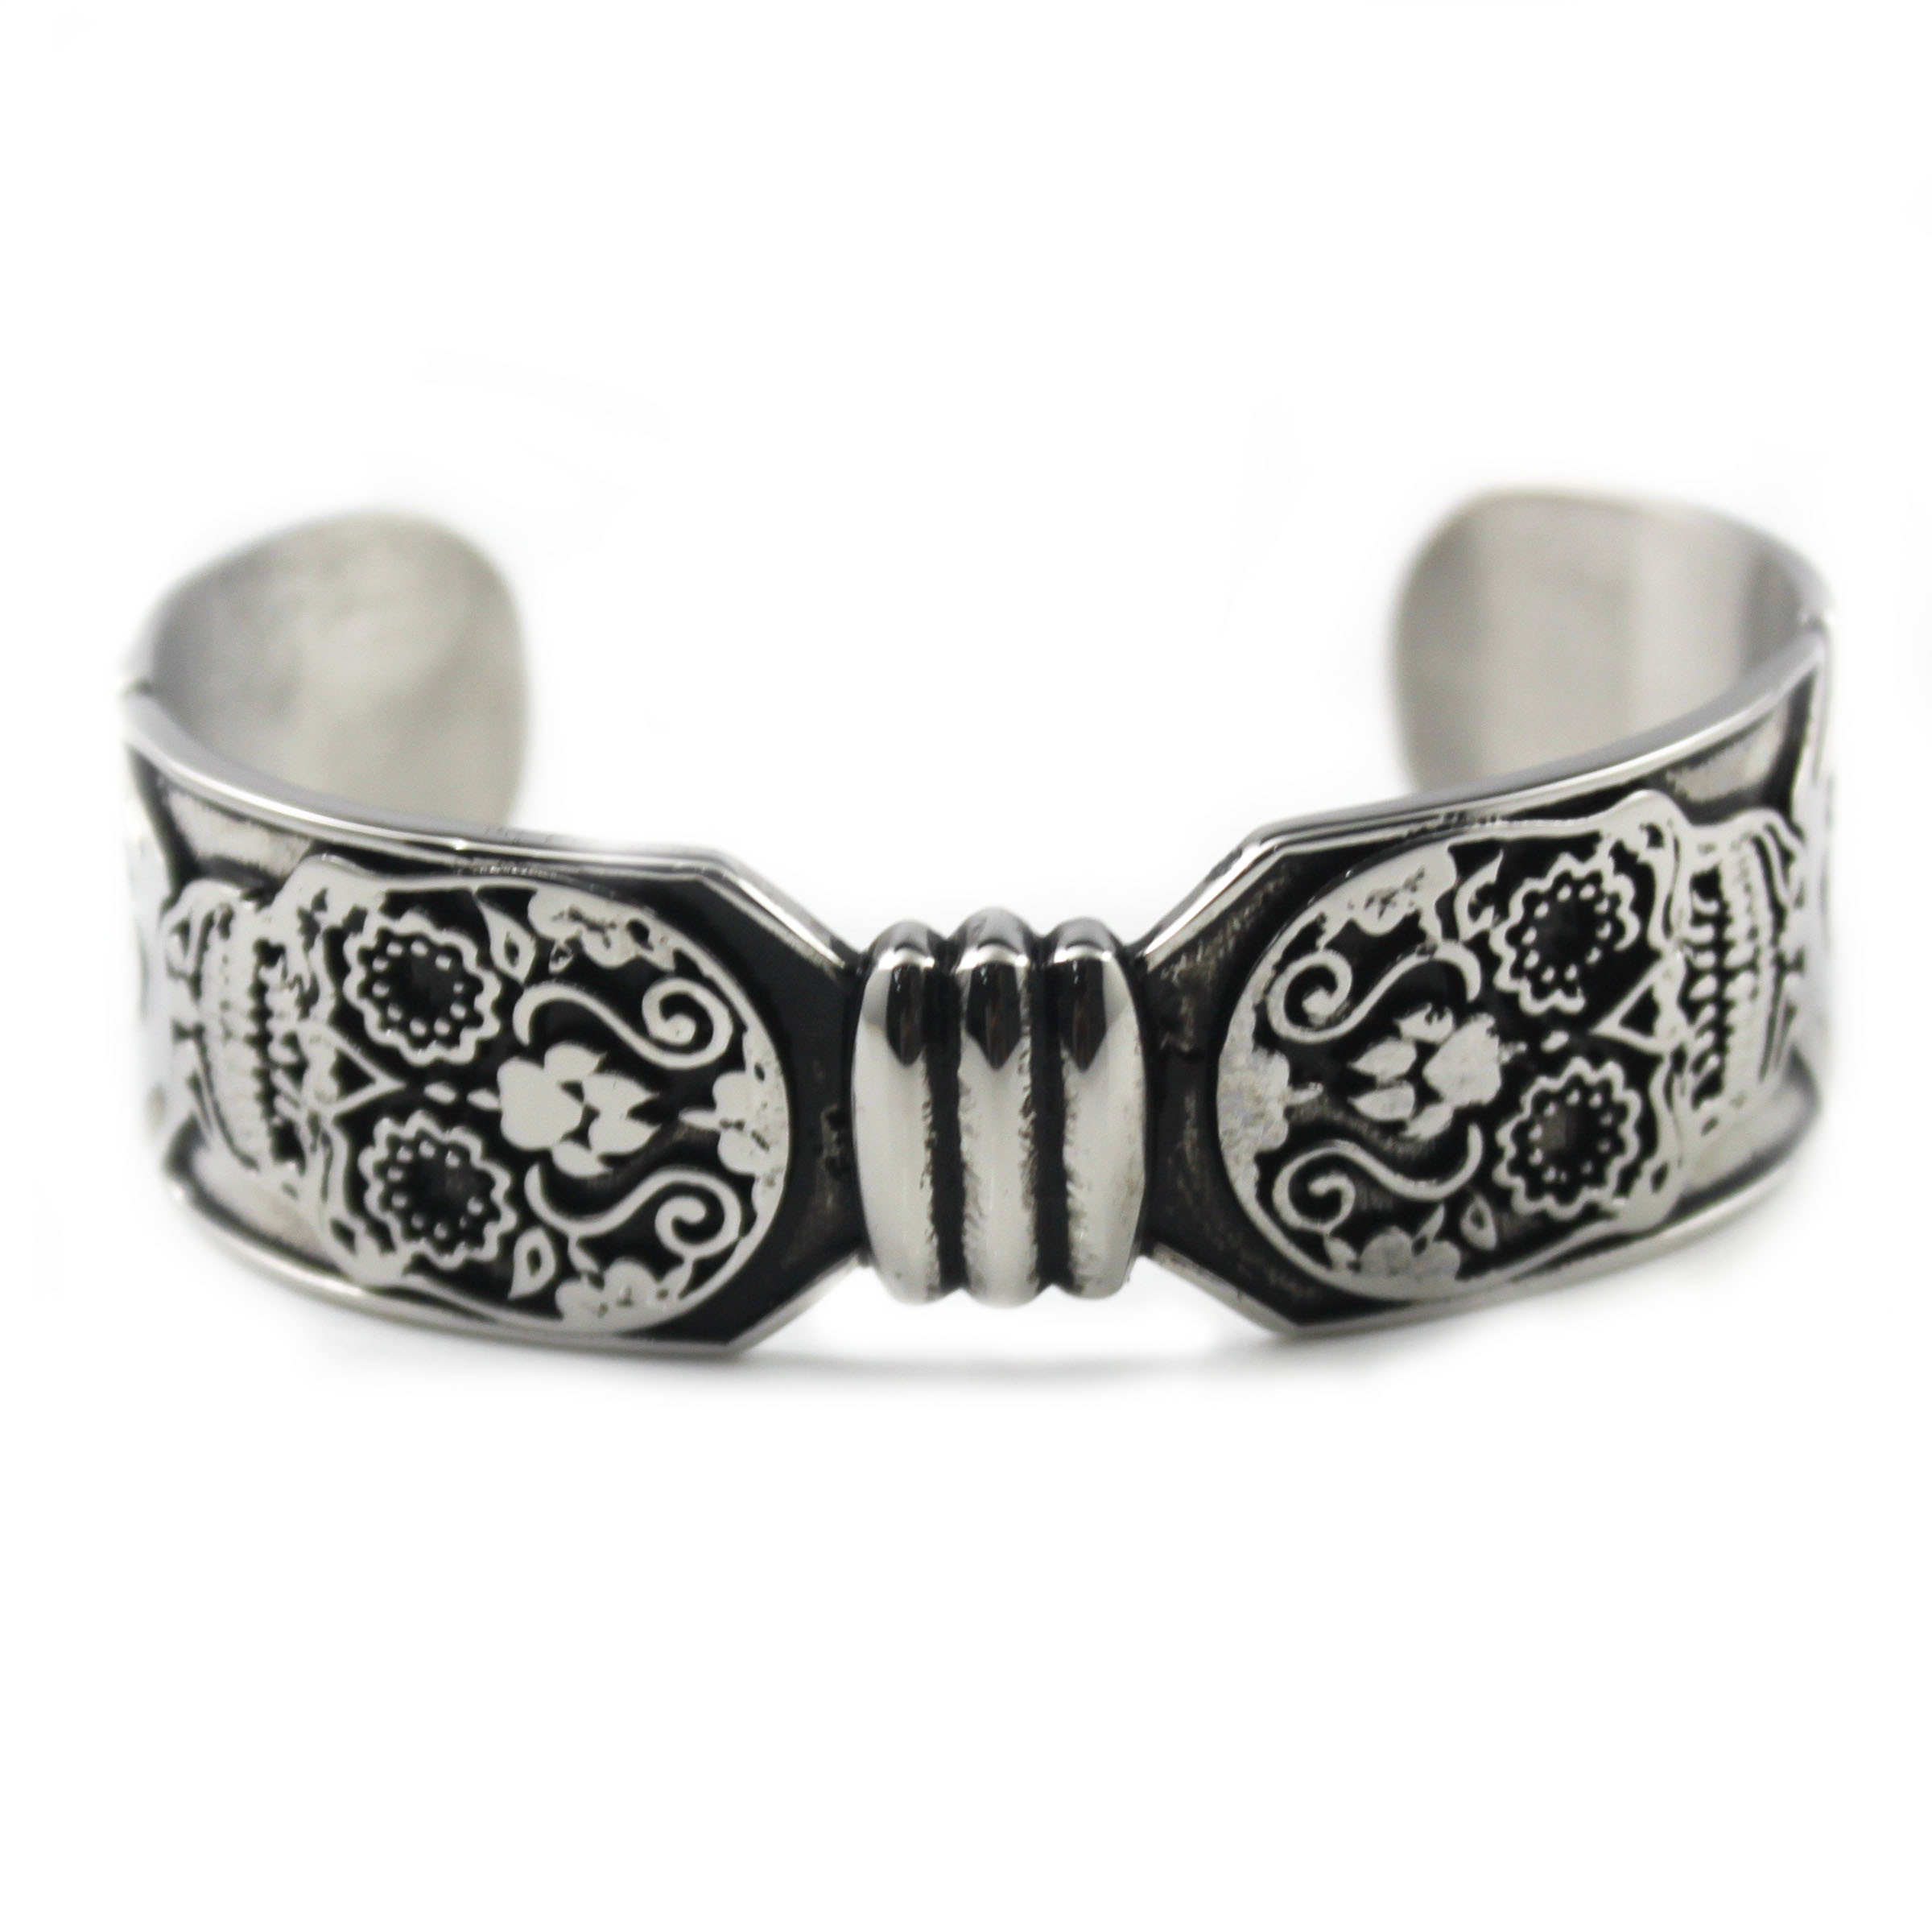 floral vintage product safety silver art deco design sterling clasp bracelet retro